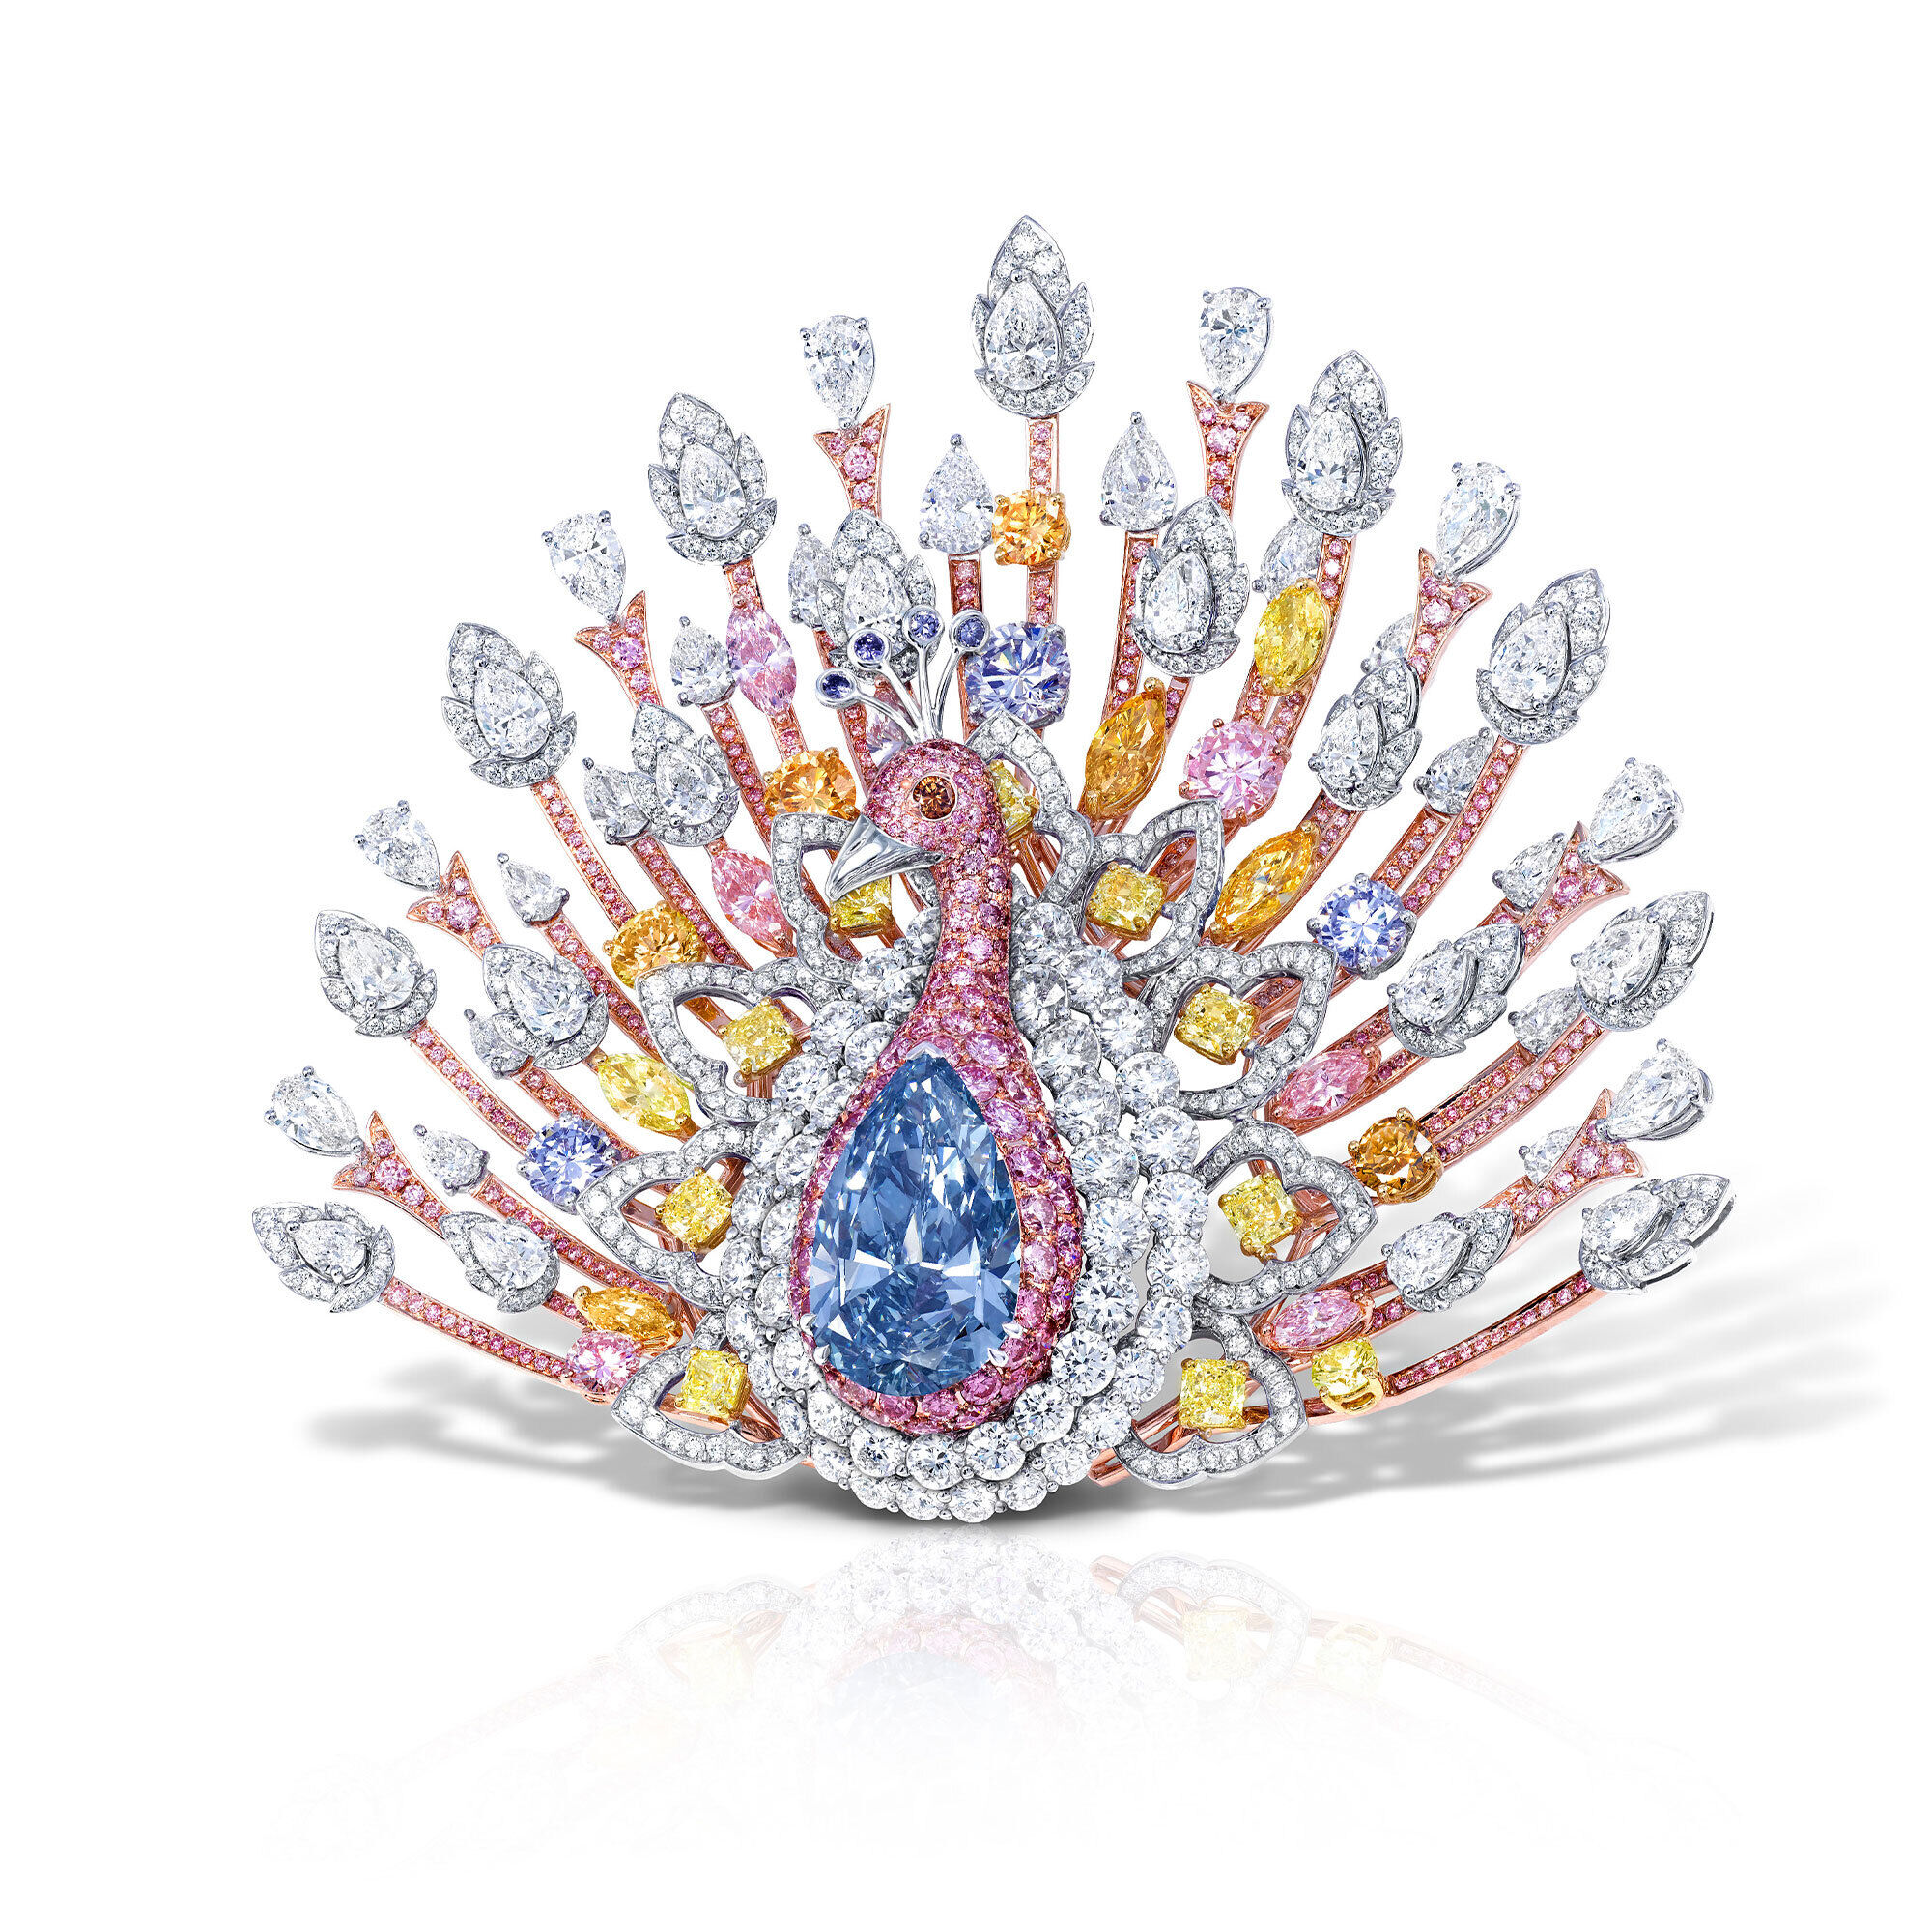 a Graff multi-coloured diamond high jewellery brooch